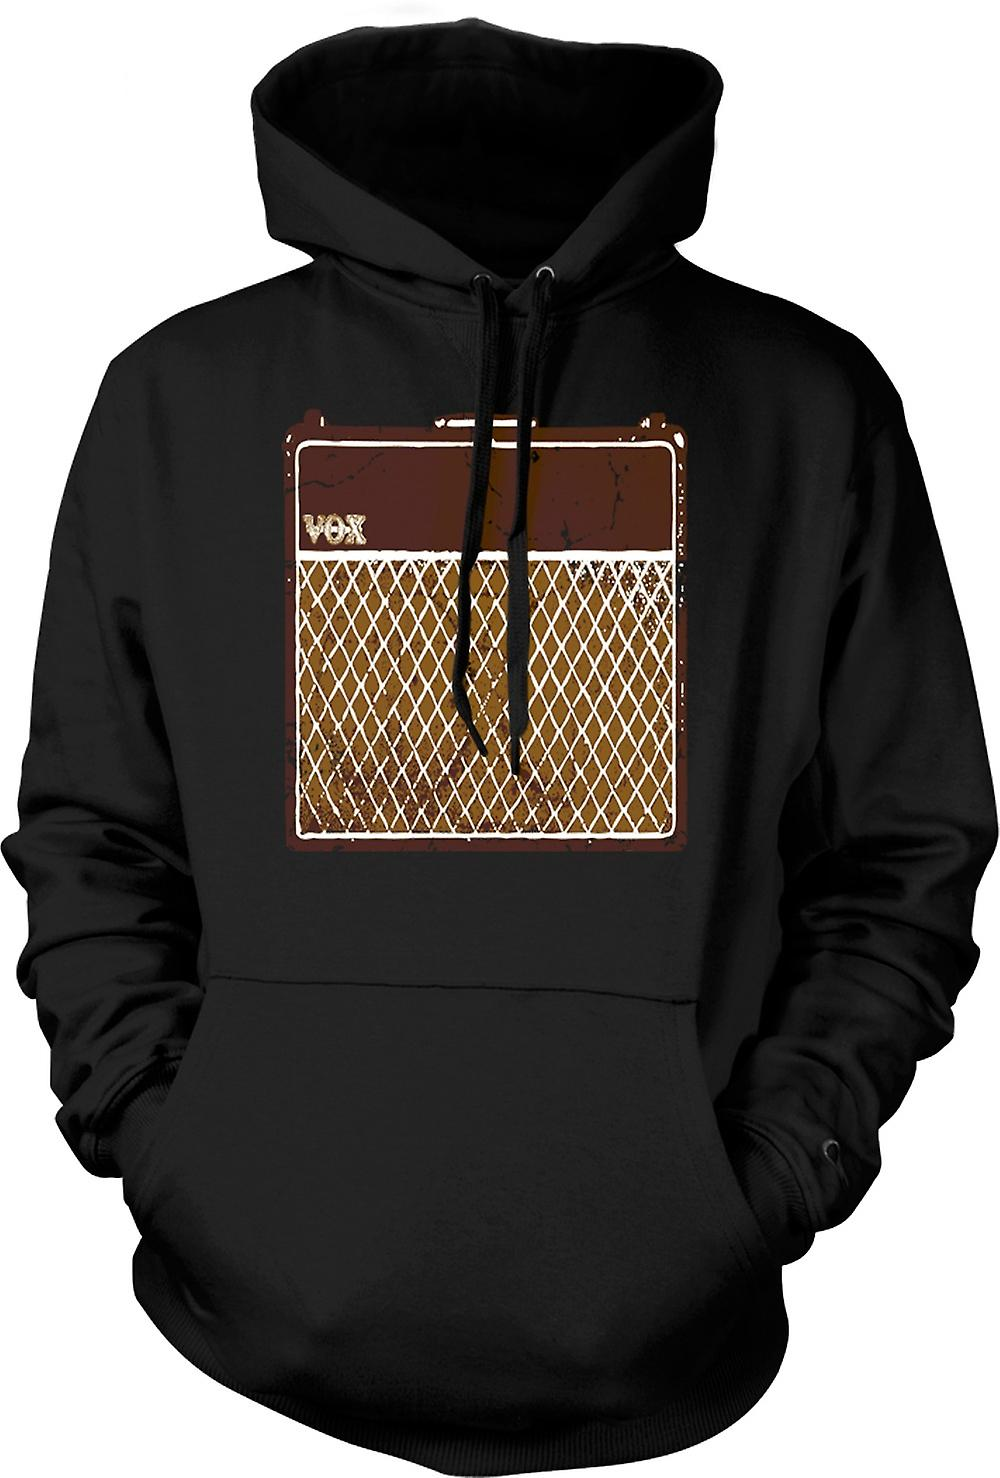 Mens Hoodie - Vox Guitar Amps AC30 - Blues Rock Music